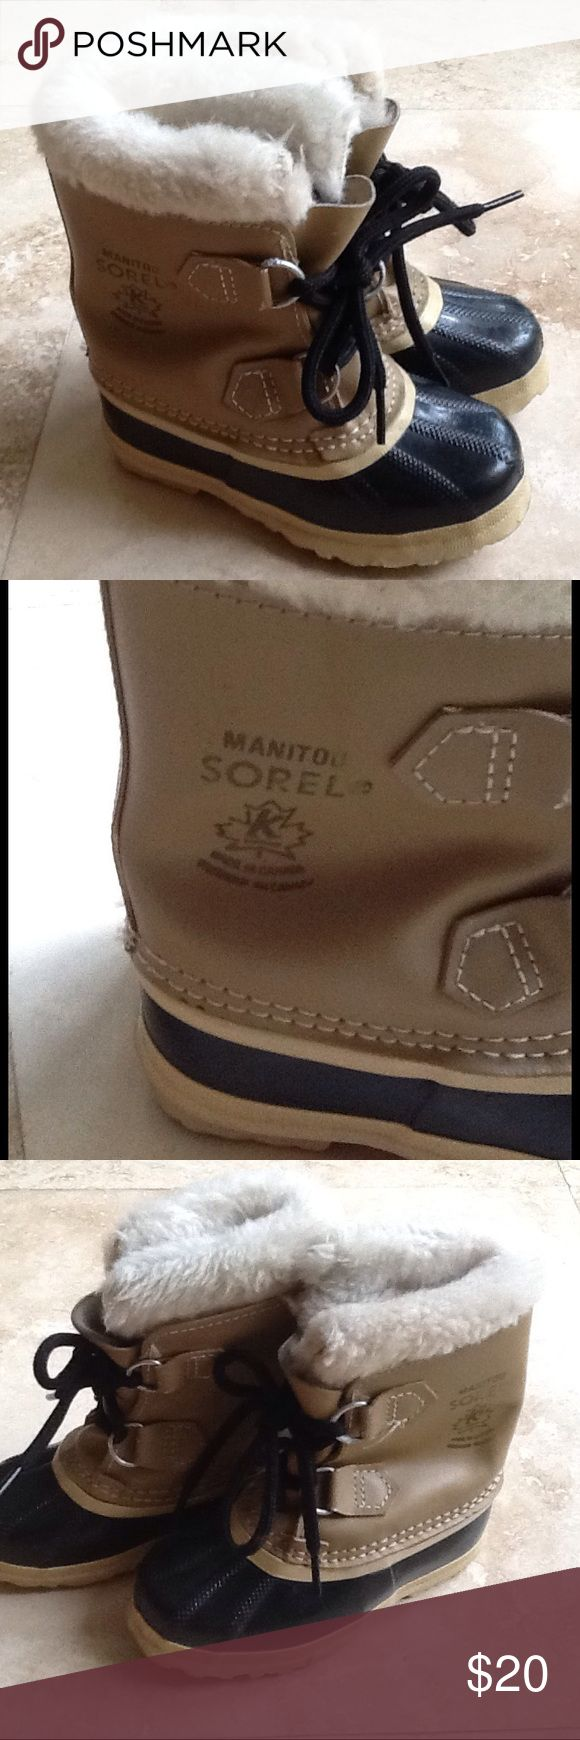 Sorel Duck Boots For Kids Duck boots. These are made in Canada. Removable inserts. Wool lined. No signs of wear. They are marked size 10 on bottom of boot. Very warm. Could be for. Girl as well.Price Firm...get ready for winter before the rush. Great price. Sorel Shoes Rain & Snow Boots